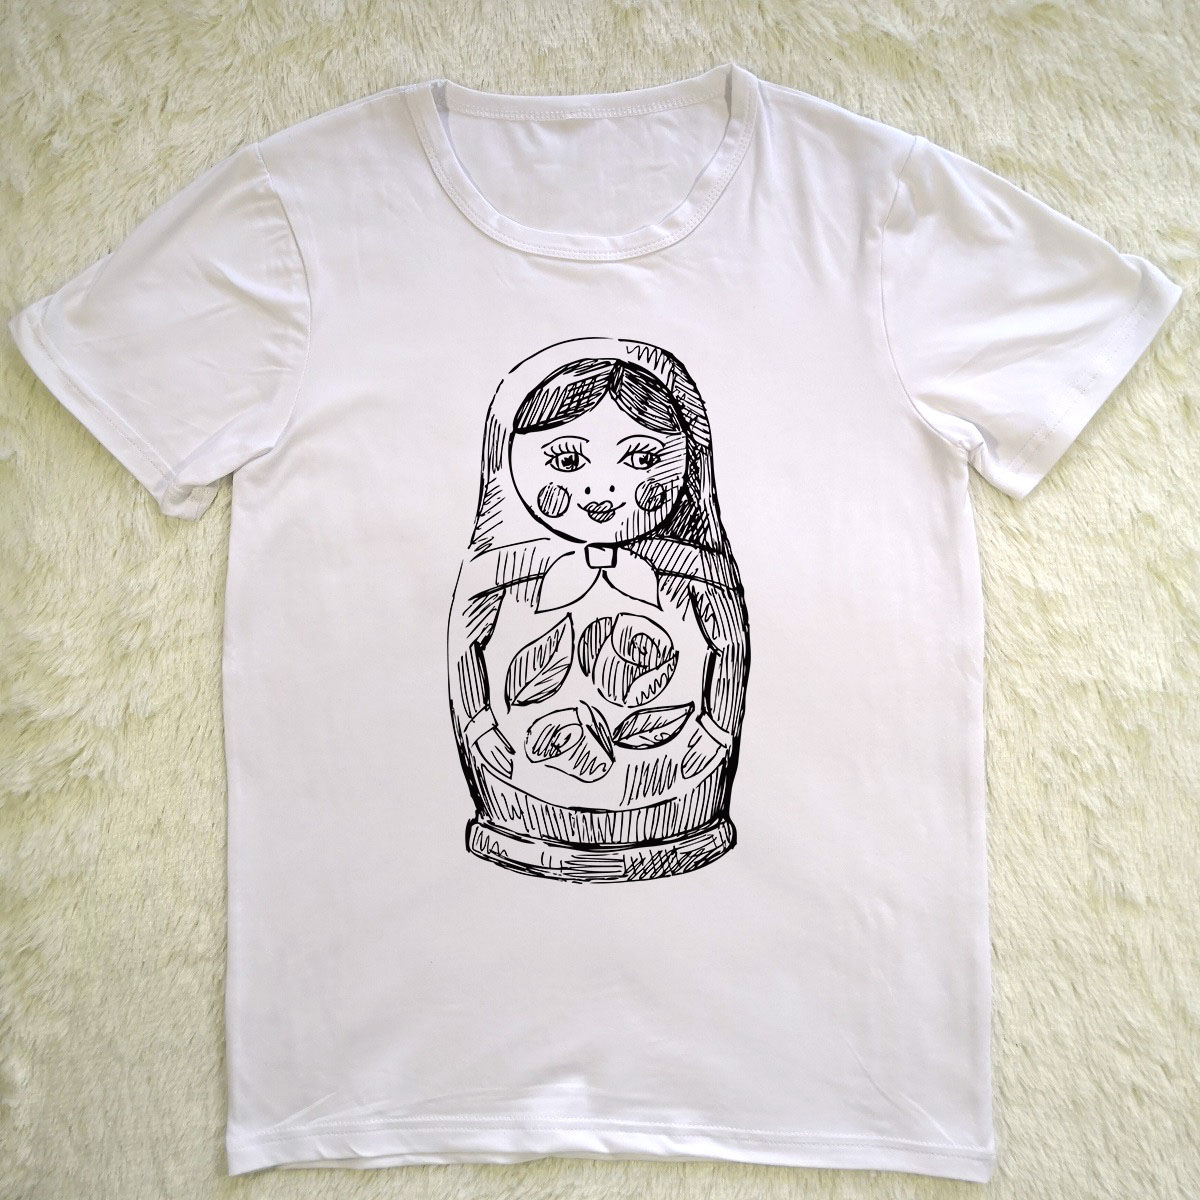 Hillbilly Funny Russian Doll Printed Women tshirt Summer Tops Slim White O-neck Harajuku Vintage Casual T shirt Women Vogue New